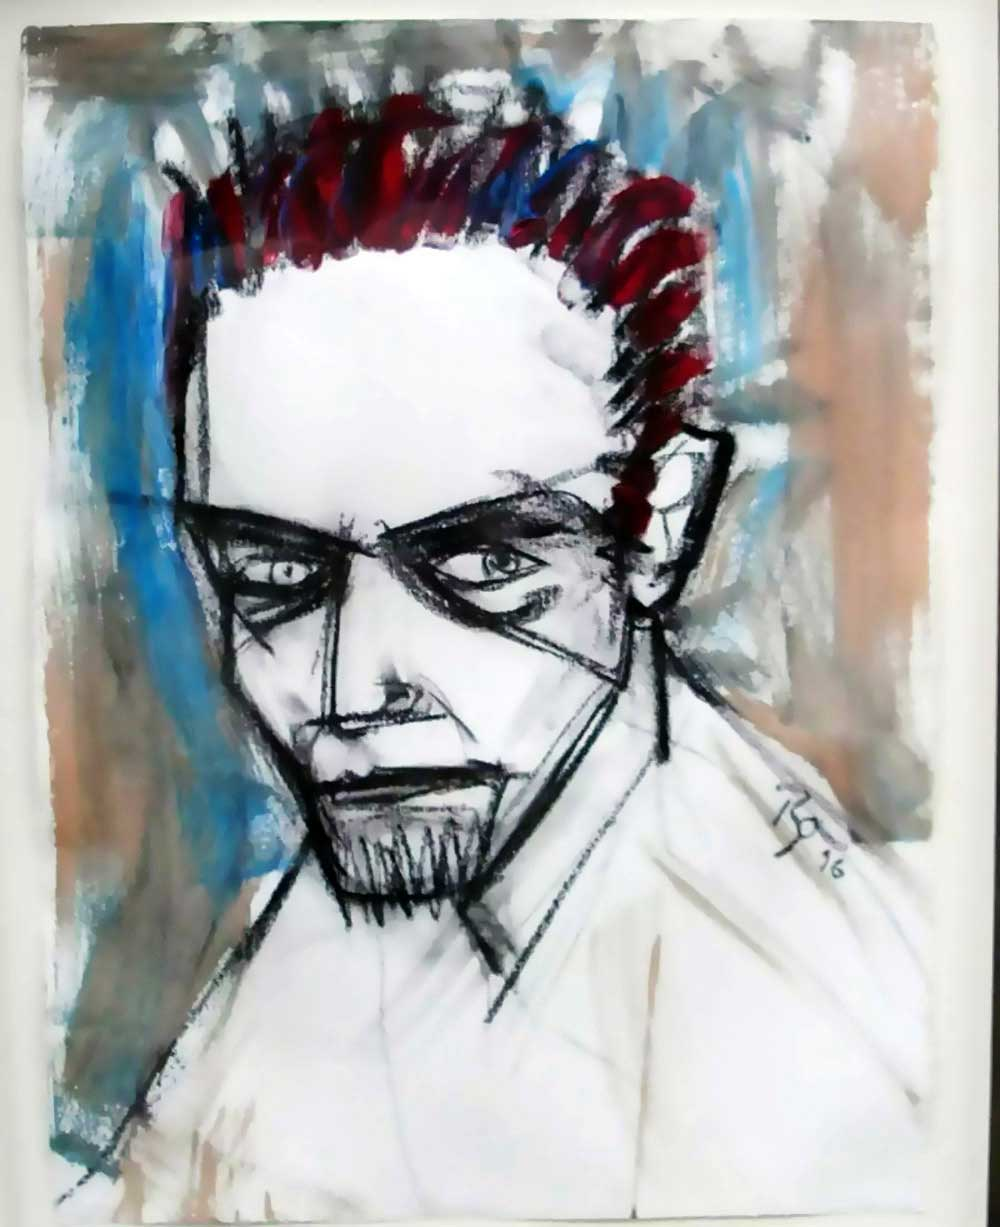 David-Bowie-paintings-selfportrait-1996